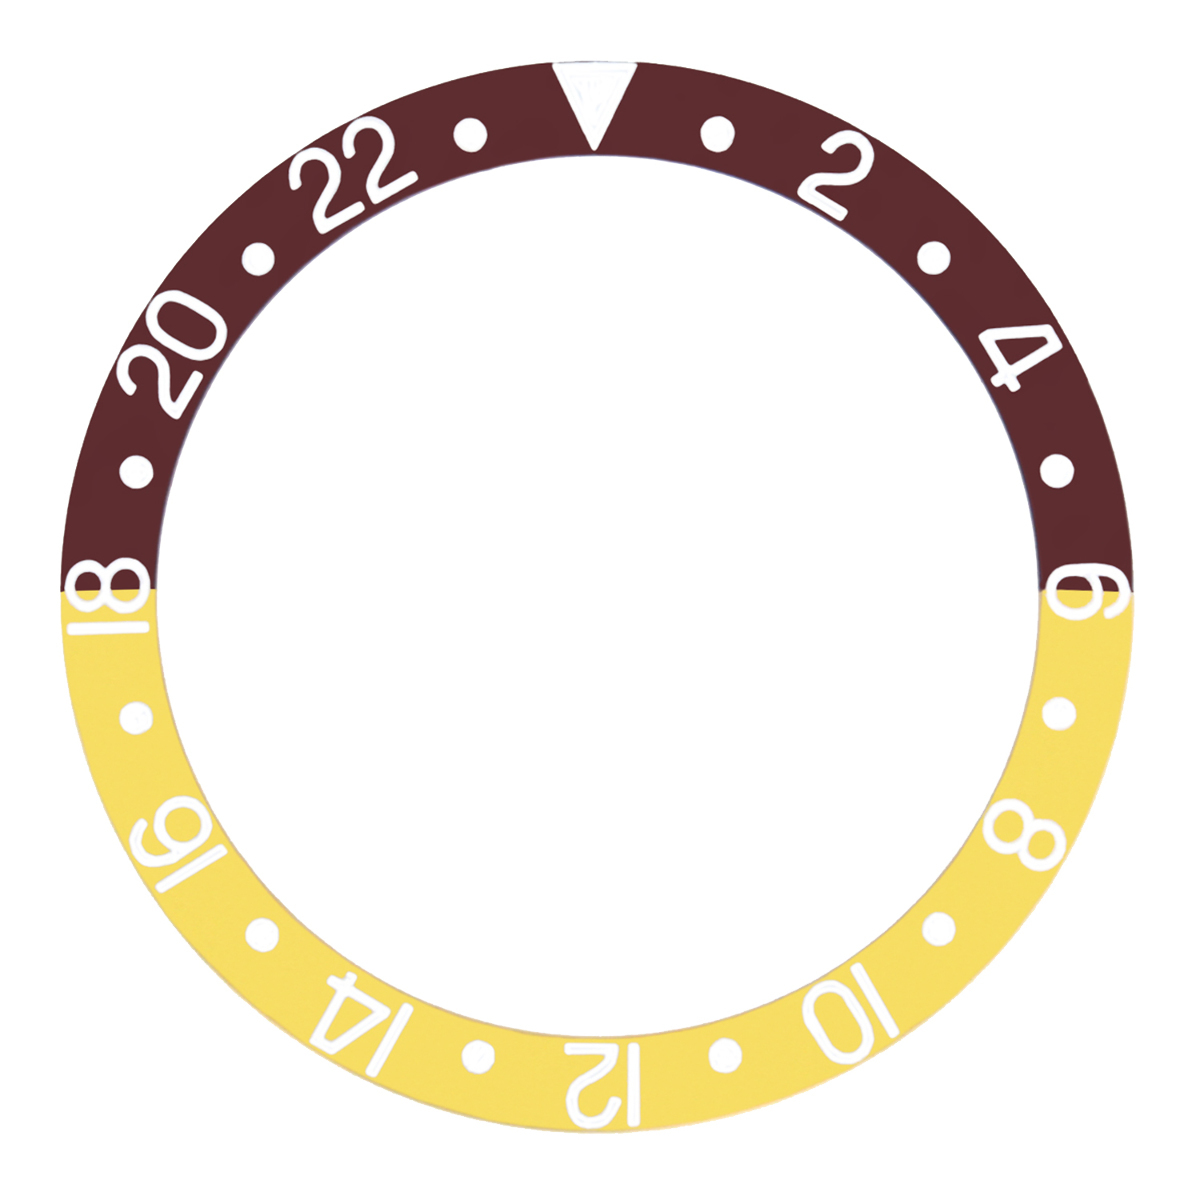 REPLACEMENT BEZEL INSERT BROWN/GOLD FOR WATCH 37.70MM X 30.70MM